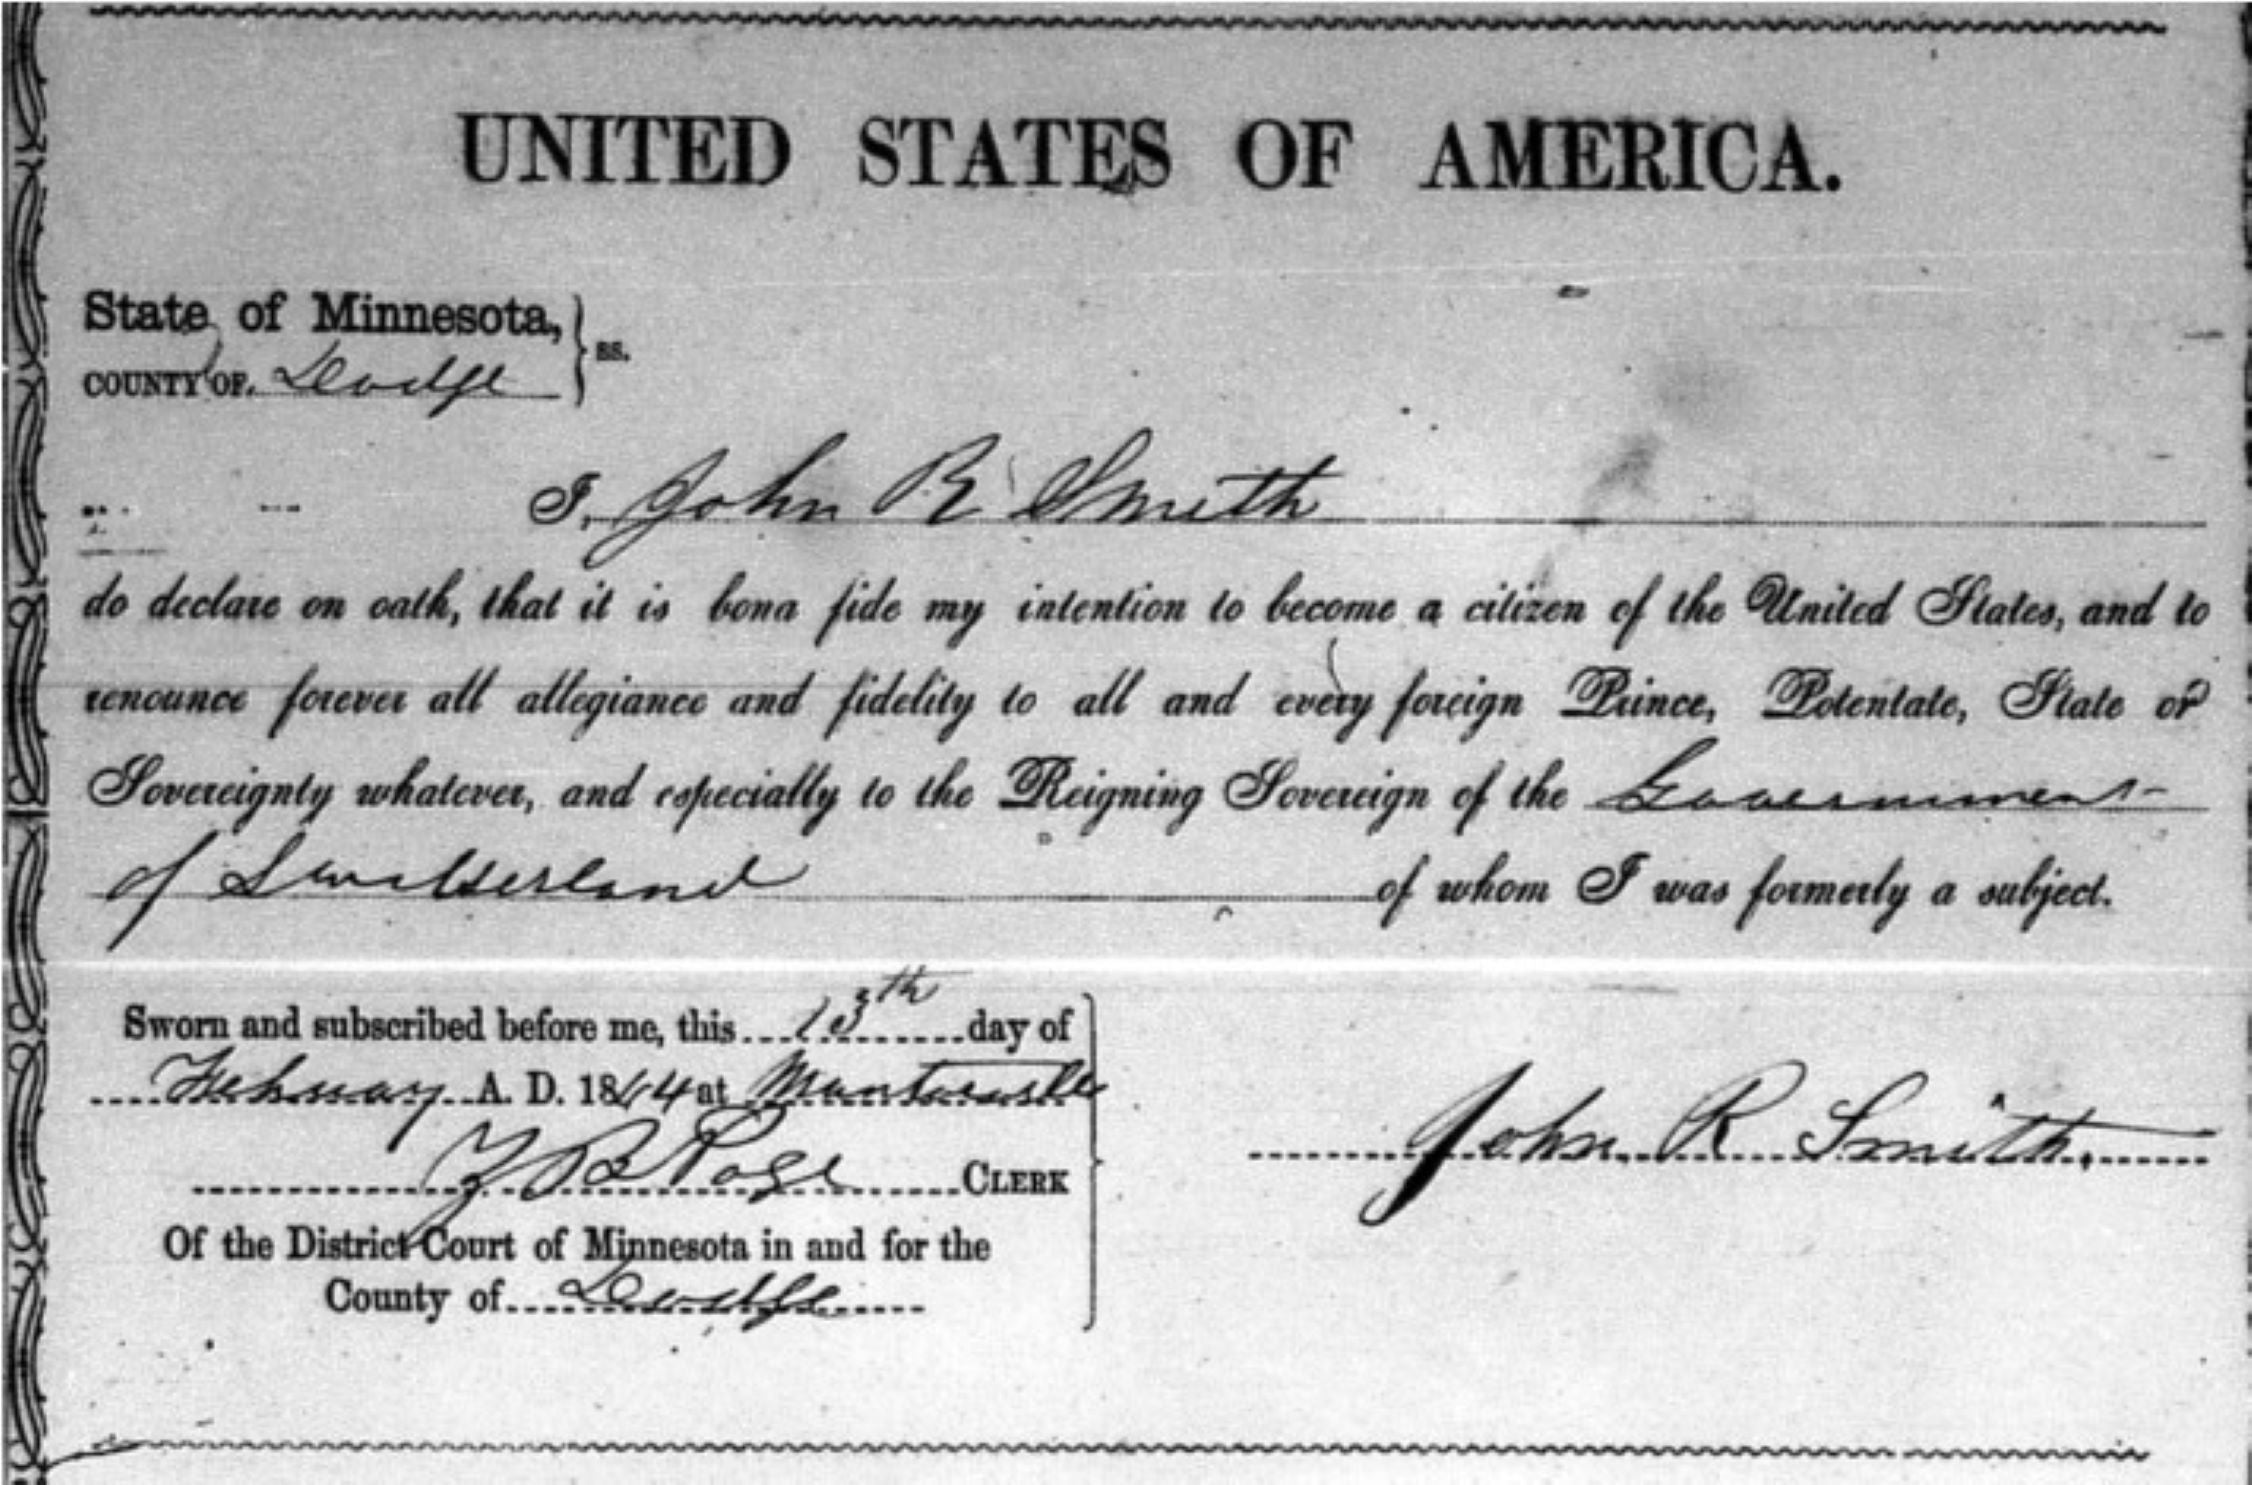 Naturalization Record Request